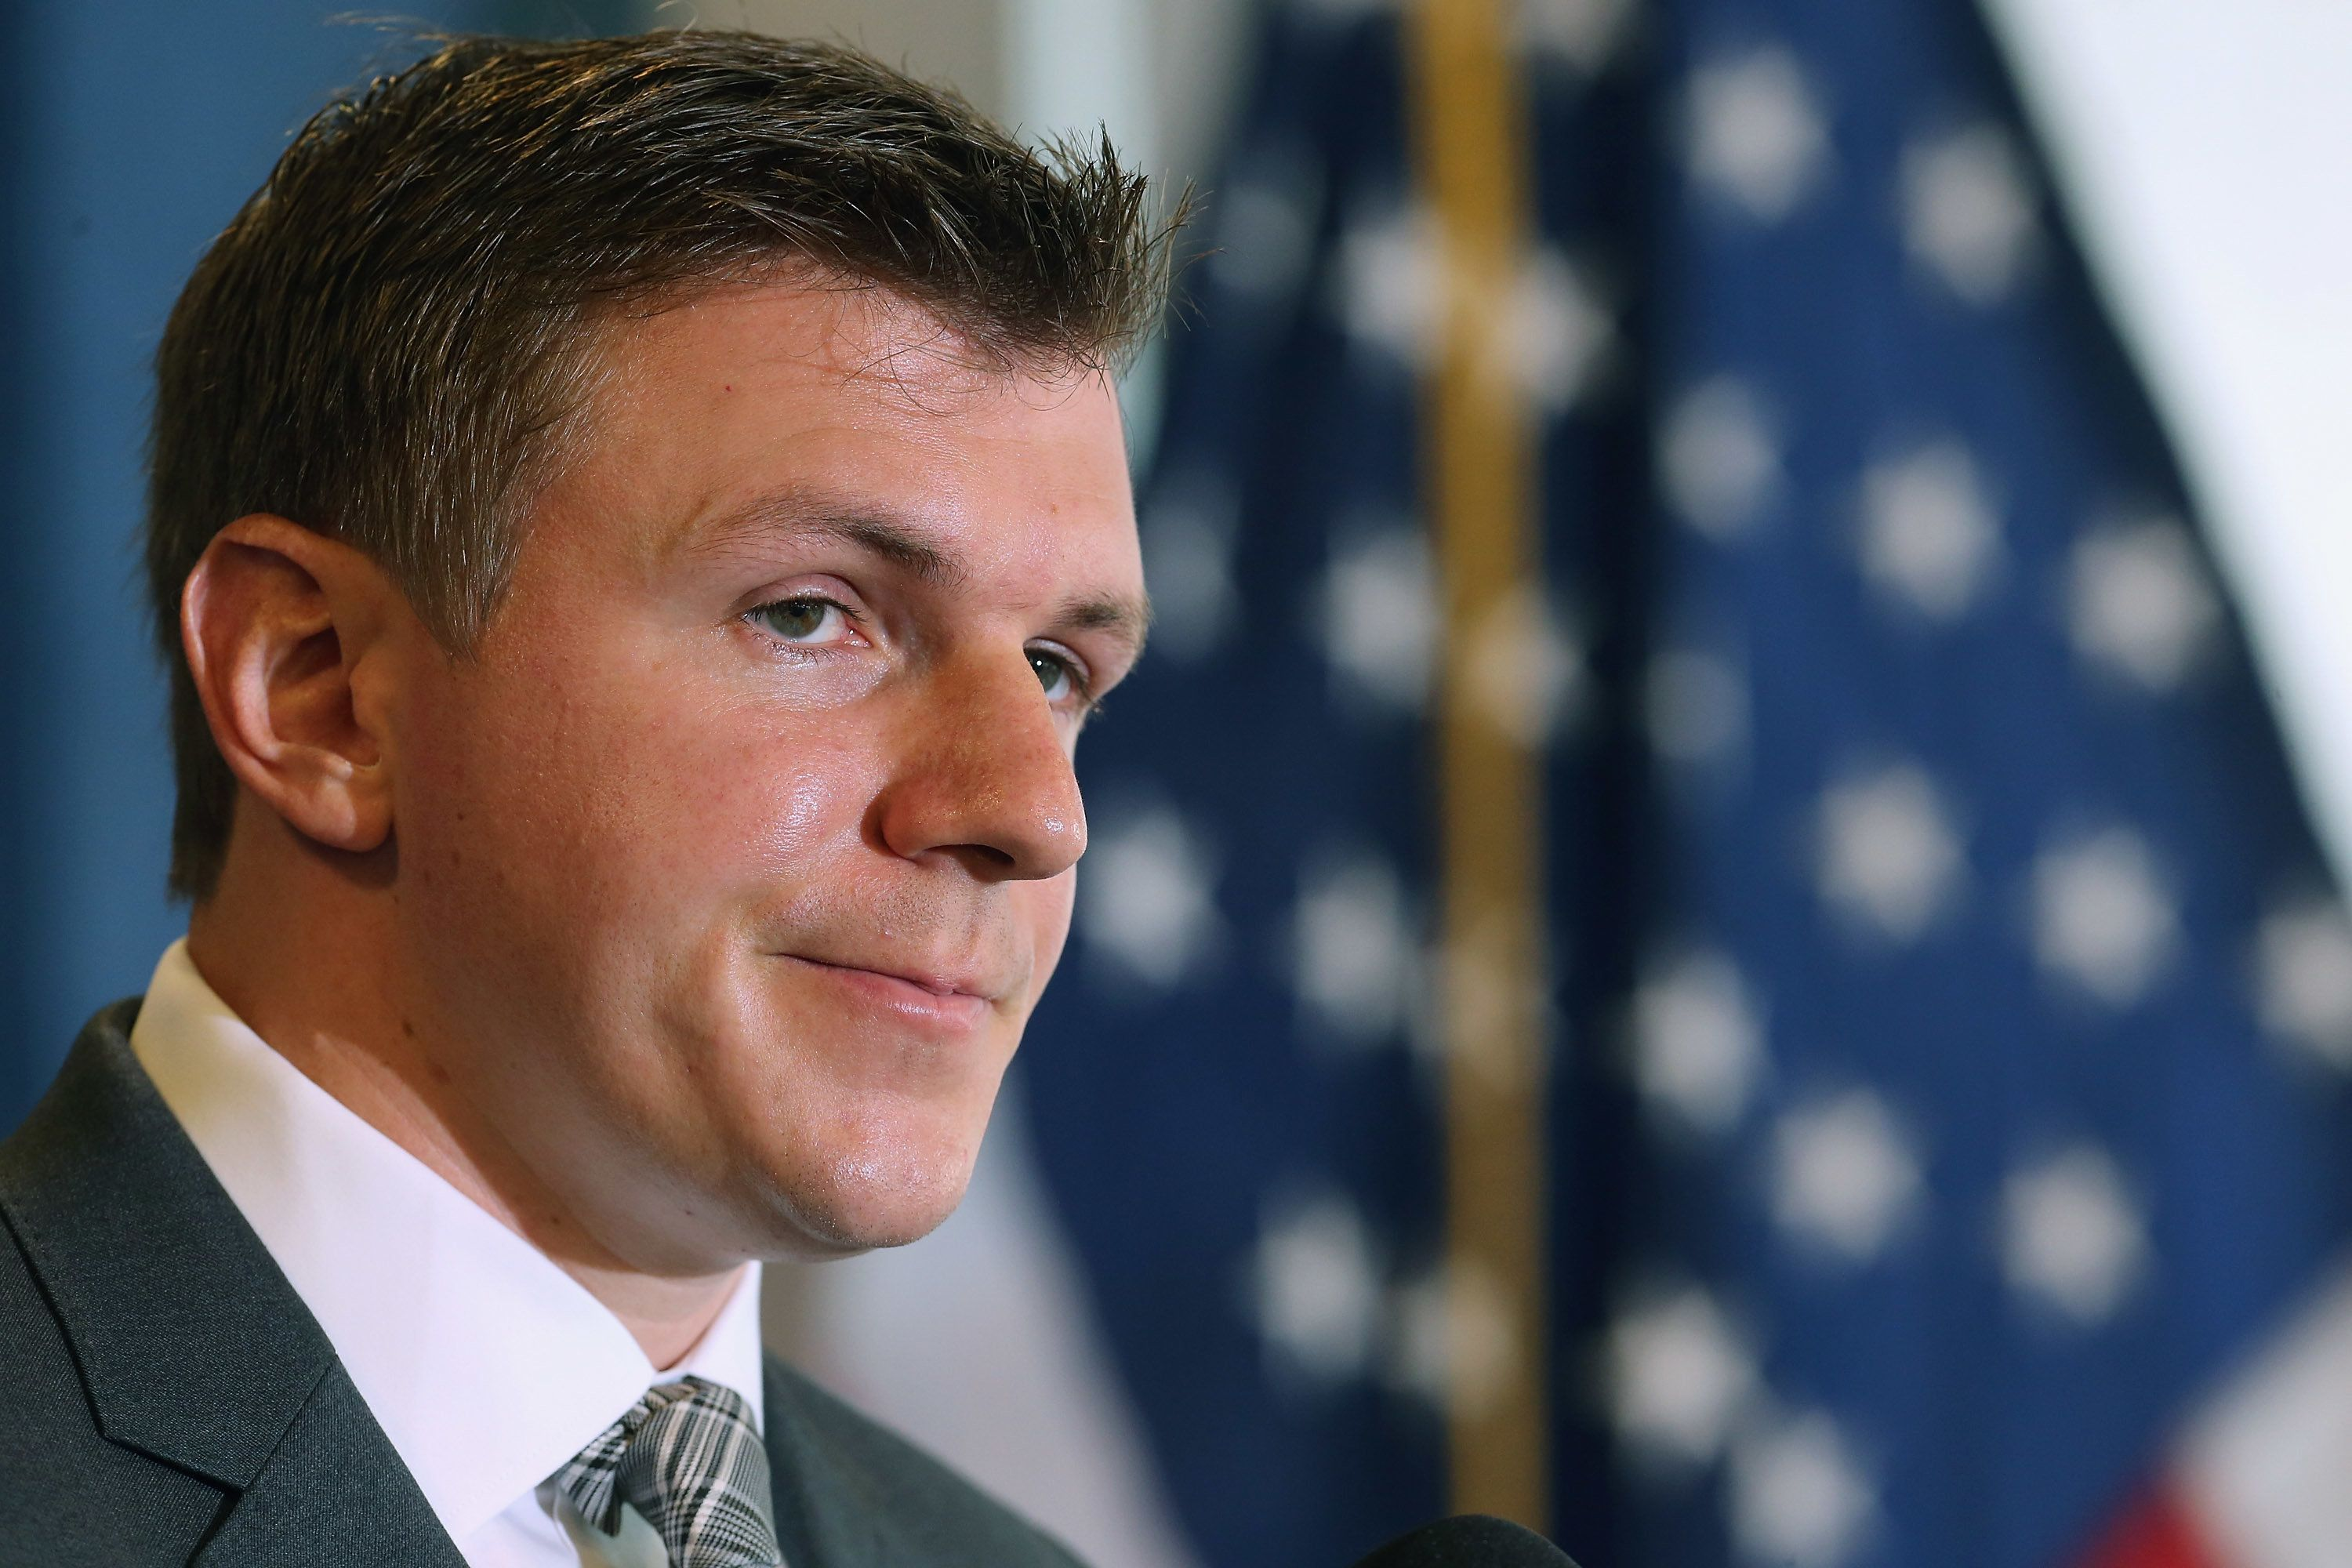 WASHINGTON, DC - SEPTEMBER 01:  Conservative undercover journalist James O'Keefe (R) holds a news conference at the National Press Club September 1, 2015 in Washington, DC. O'Keefe released a video of that accuses the Democratic frontrunner Hillary Clinton's director of marketing and FEC compliance director of breaking the law by allowing a Canadian tourist to buy $75 of campaign swag using the Project Veritas Action journalist as a straw purchaser. O'Keefe promised that people will resign from their jobs as his 'Army of Exposers' record and release more undercover videos during the 2016 campaign.  (Photo by Chip Somodevilla/Getty Images)